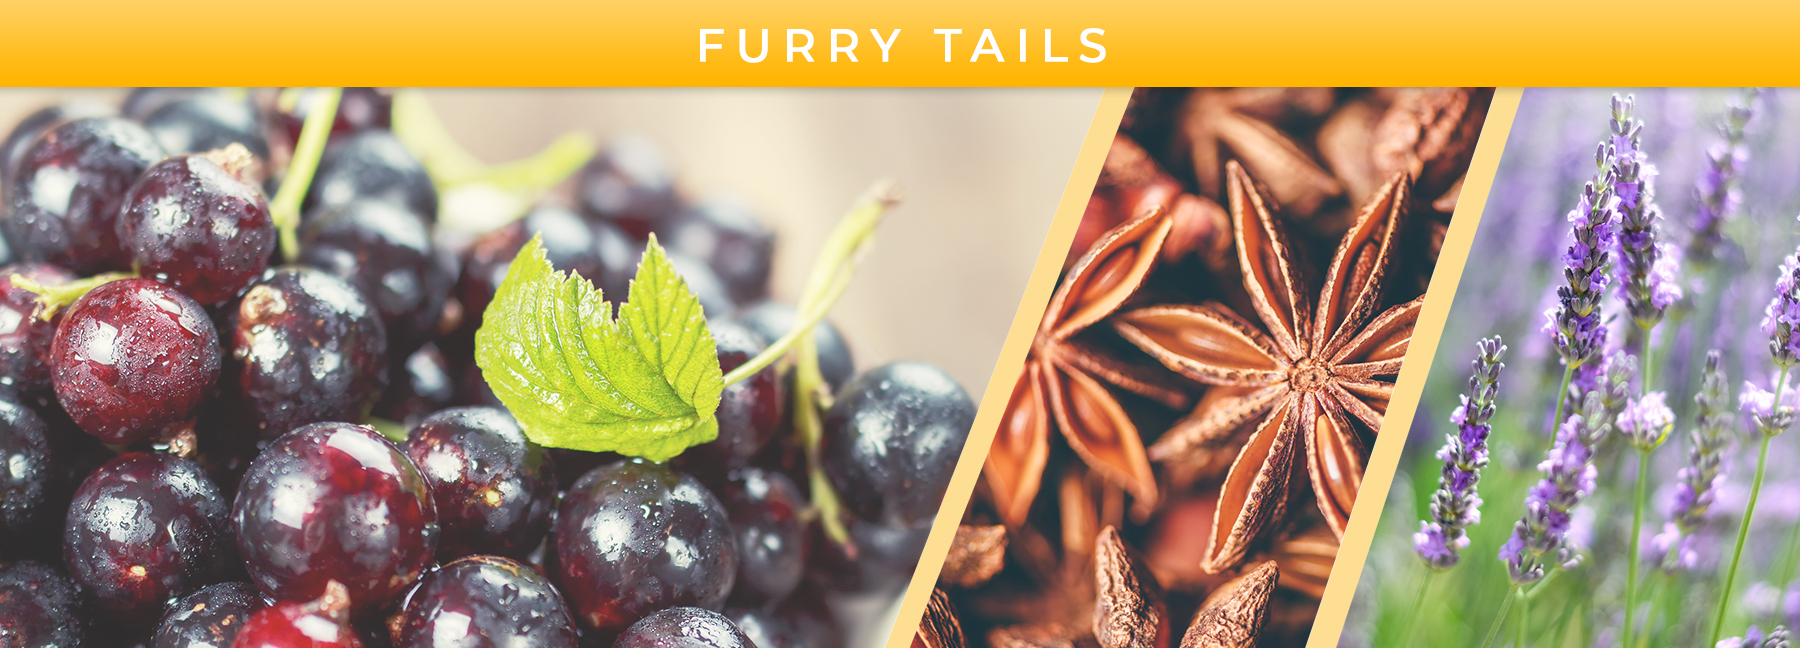 Furry Tails fragrance elements